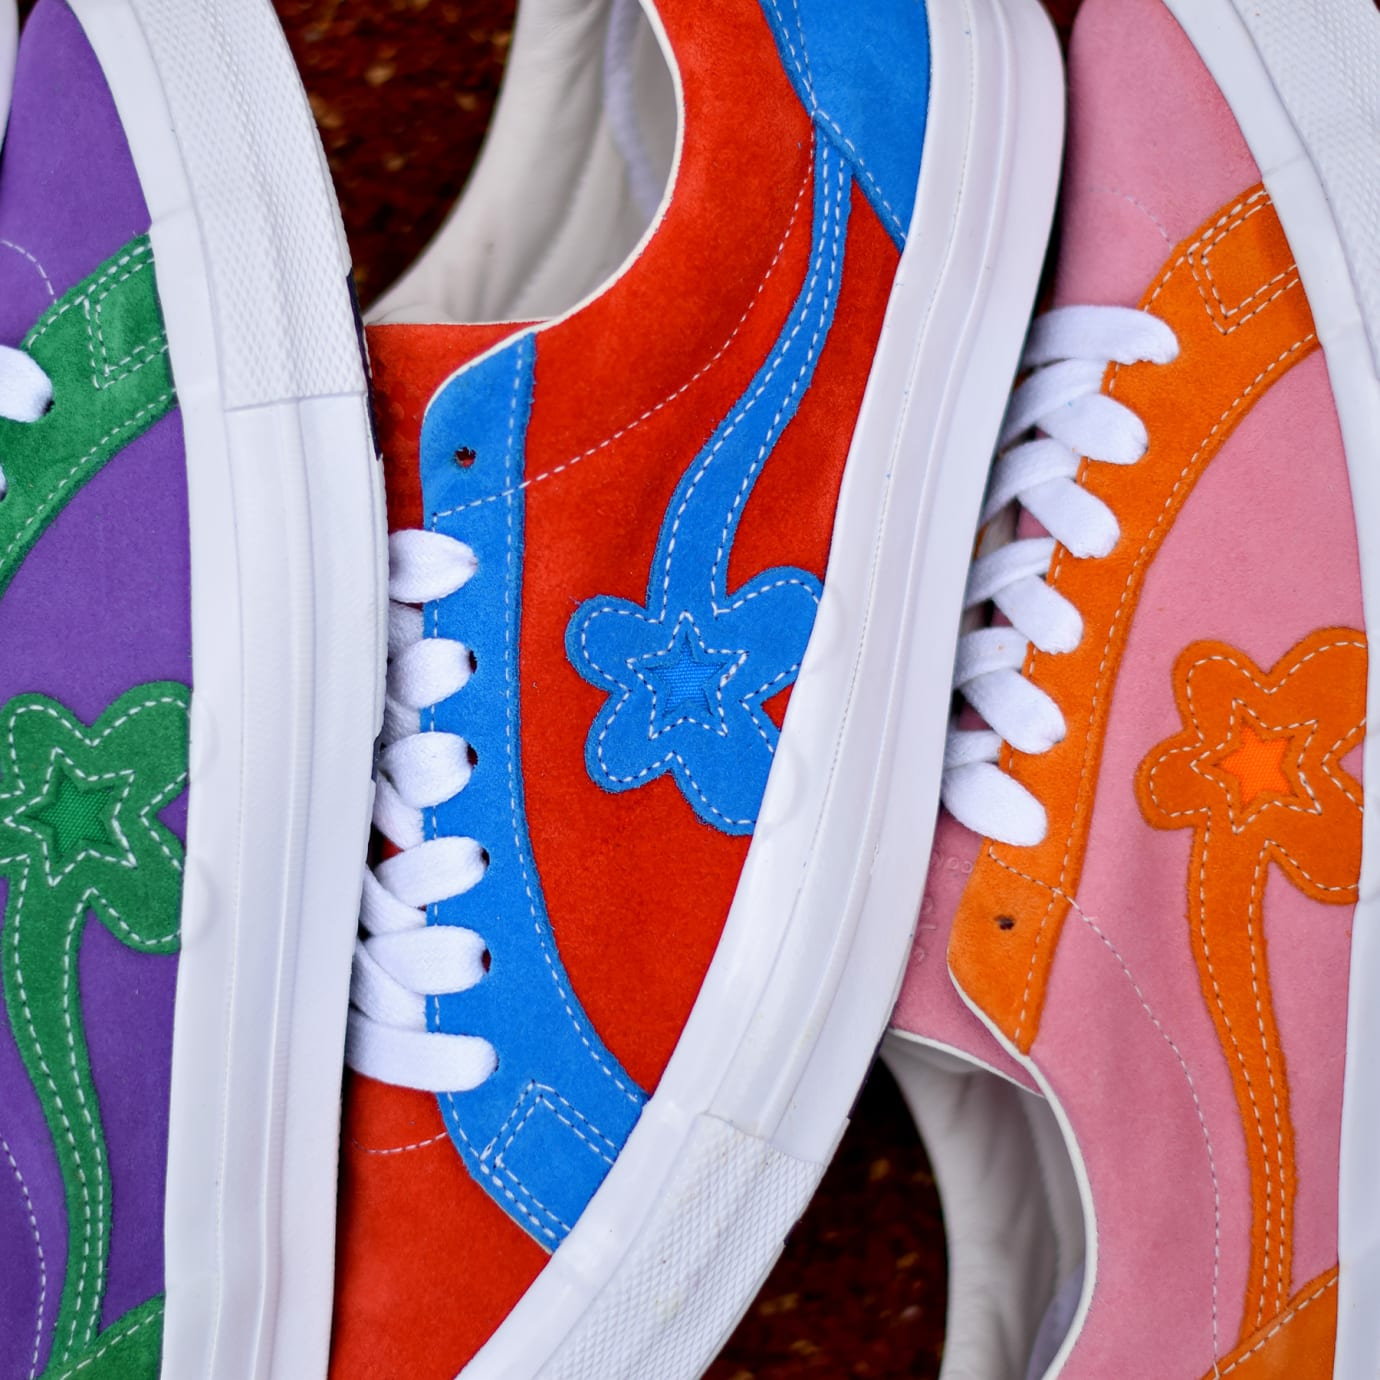 Tyler, the Creator x Converse One Star Golf Le Fleur Release Date Side